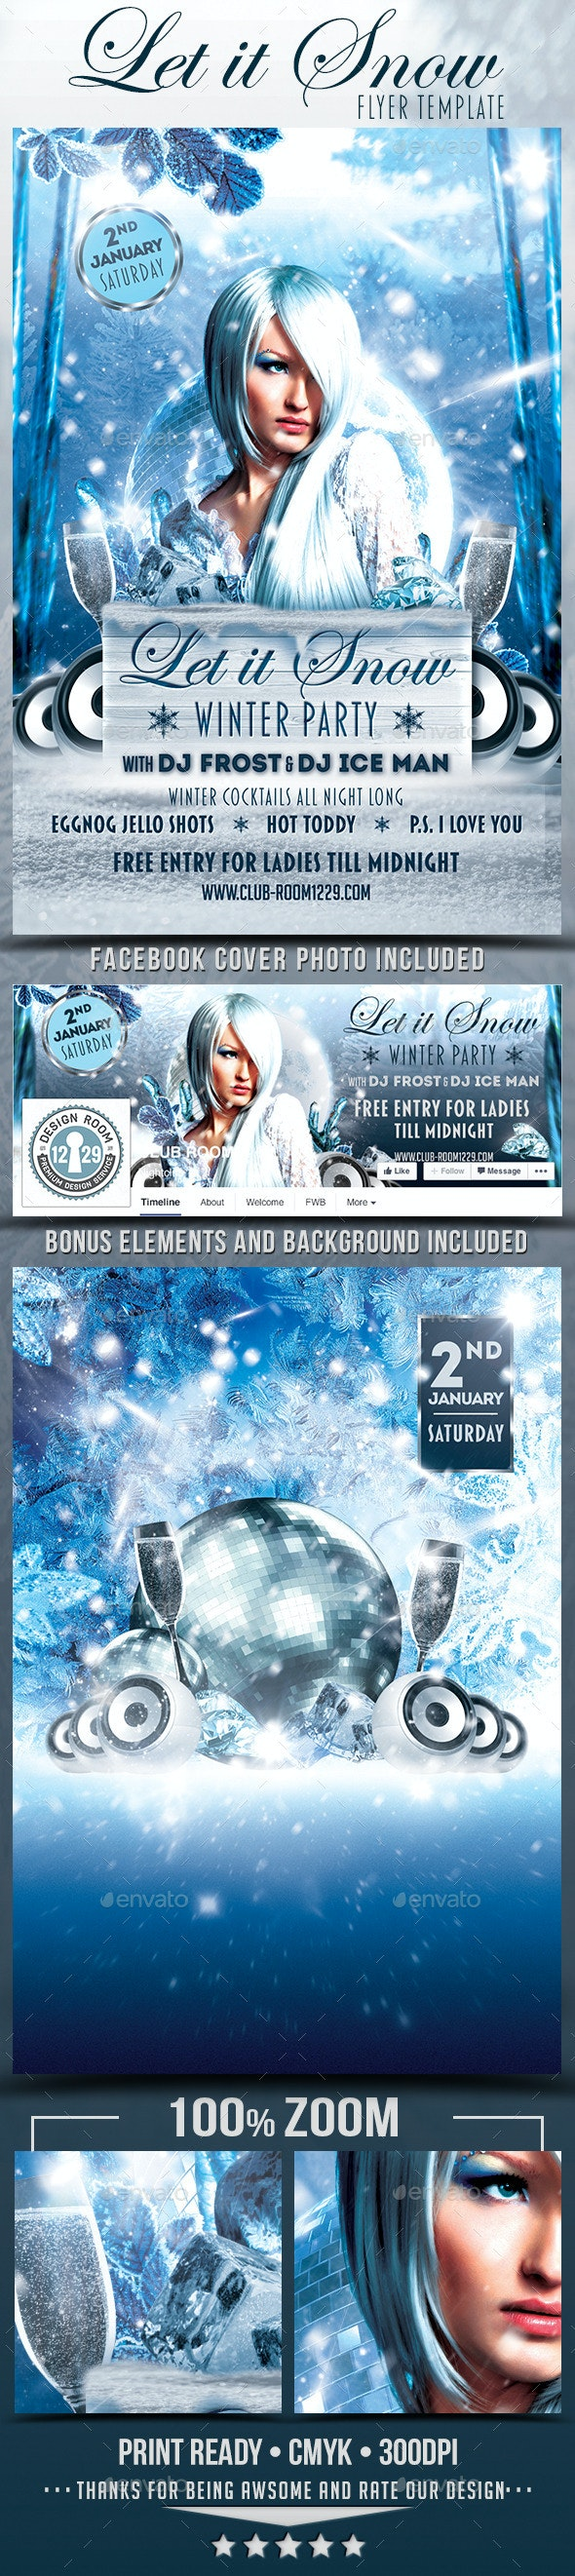 Let It Snow Winter Party Flyer Template - Clubs & Parties Events